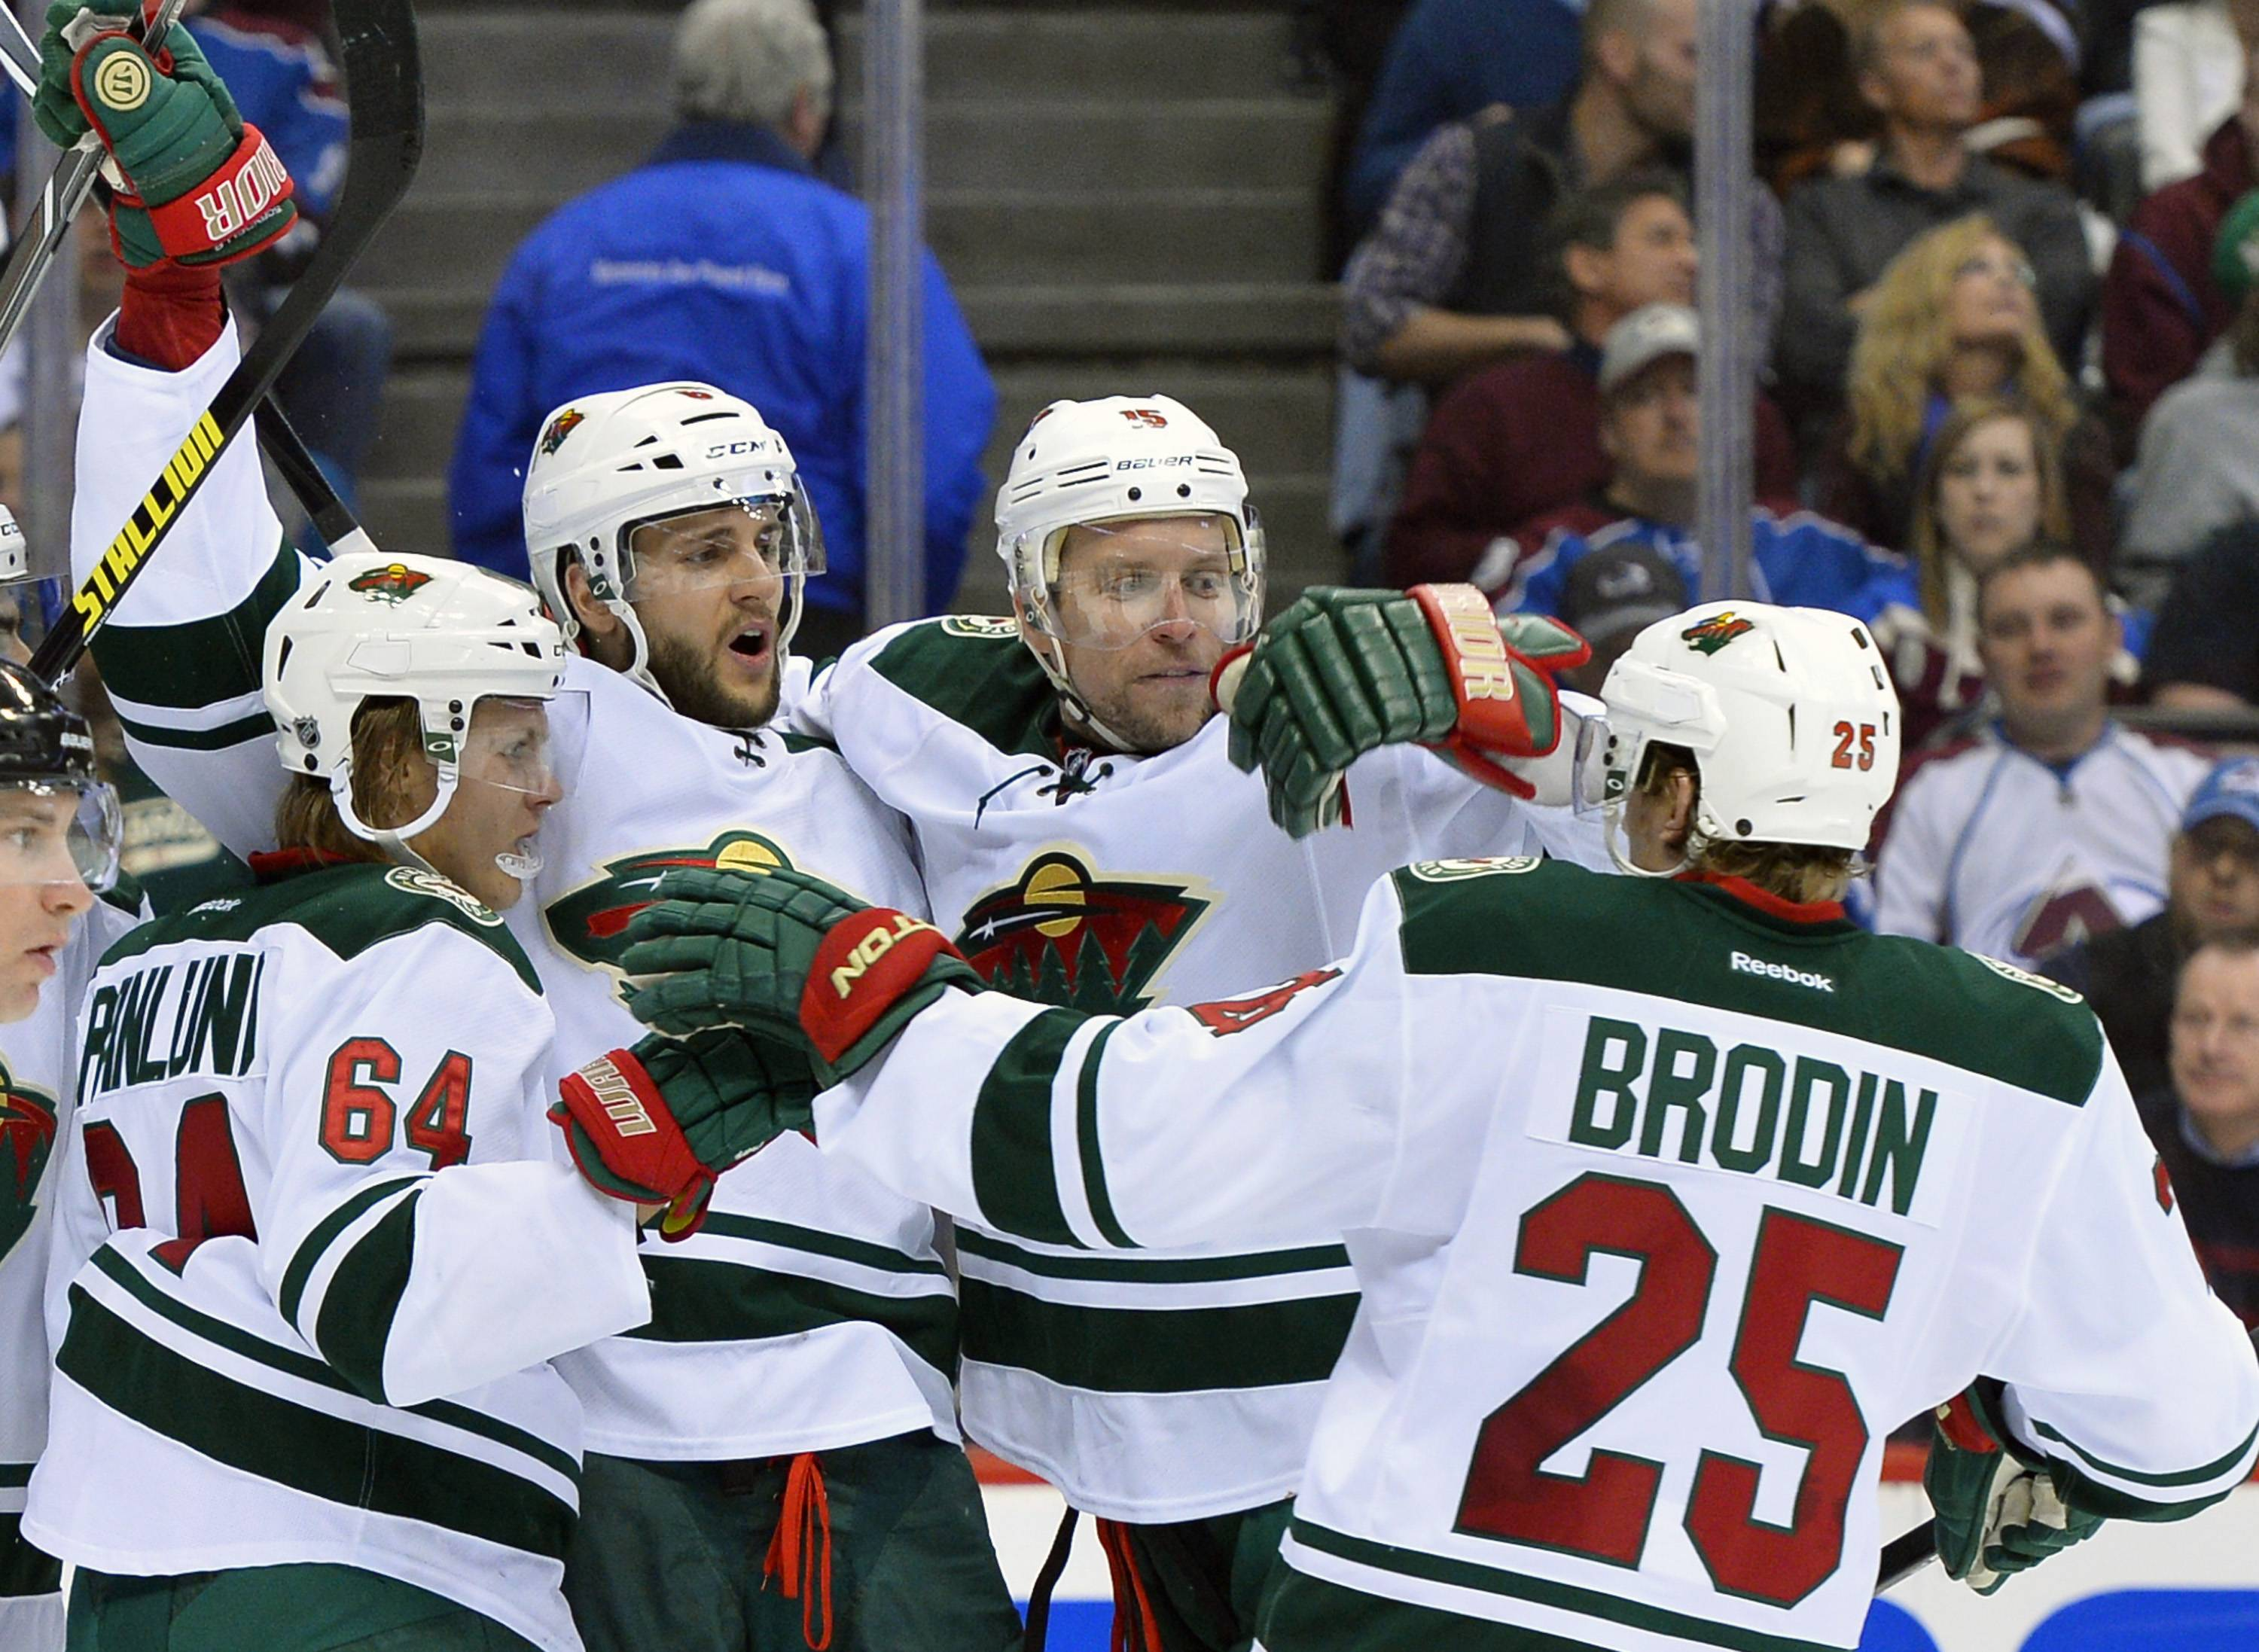 Minnesota Wild's Mikael Granlund (64), Marco Scandella (6), and Jonas Brodin (25) celebrate Dany Heatley's (15) goal against the Colorado Avalanche in the second period during Game 7 of an NHL hockey first-round playoff series on Wednesday, April 30, 2014, in Denver.